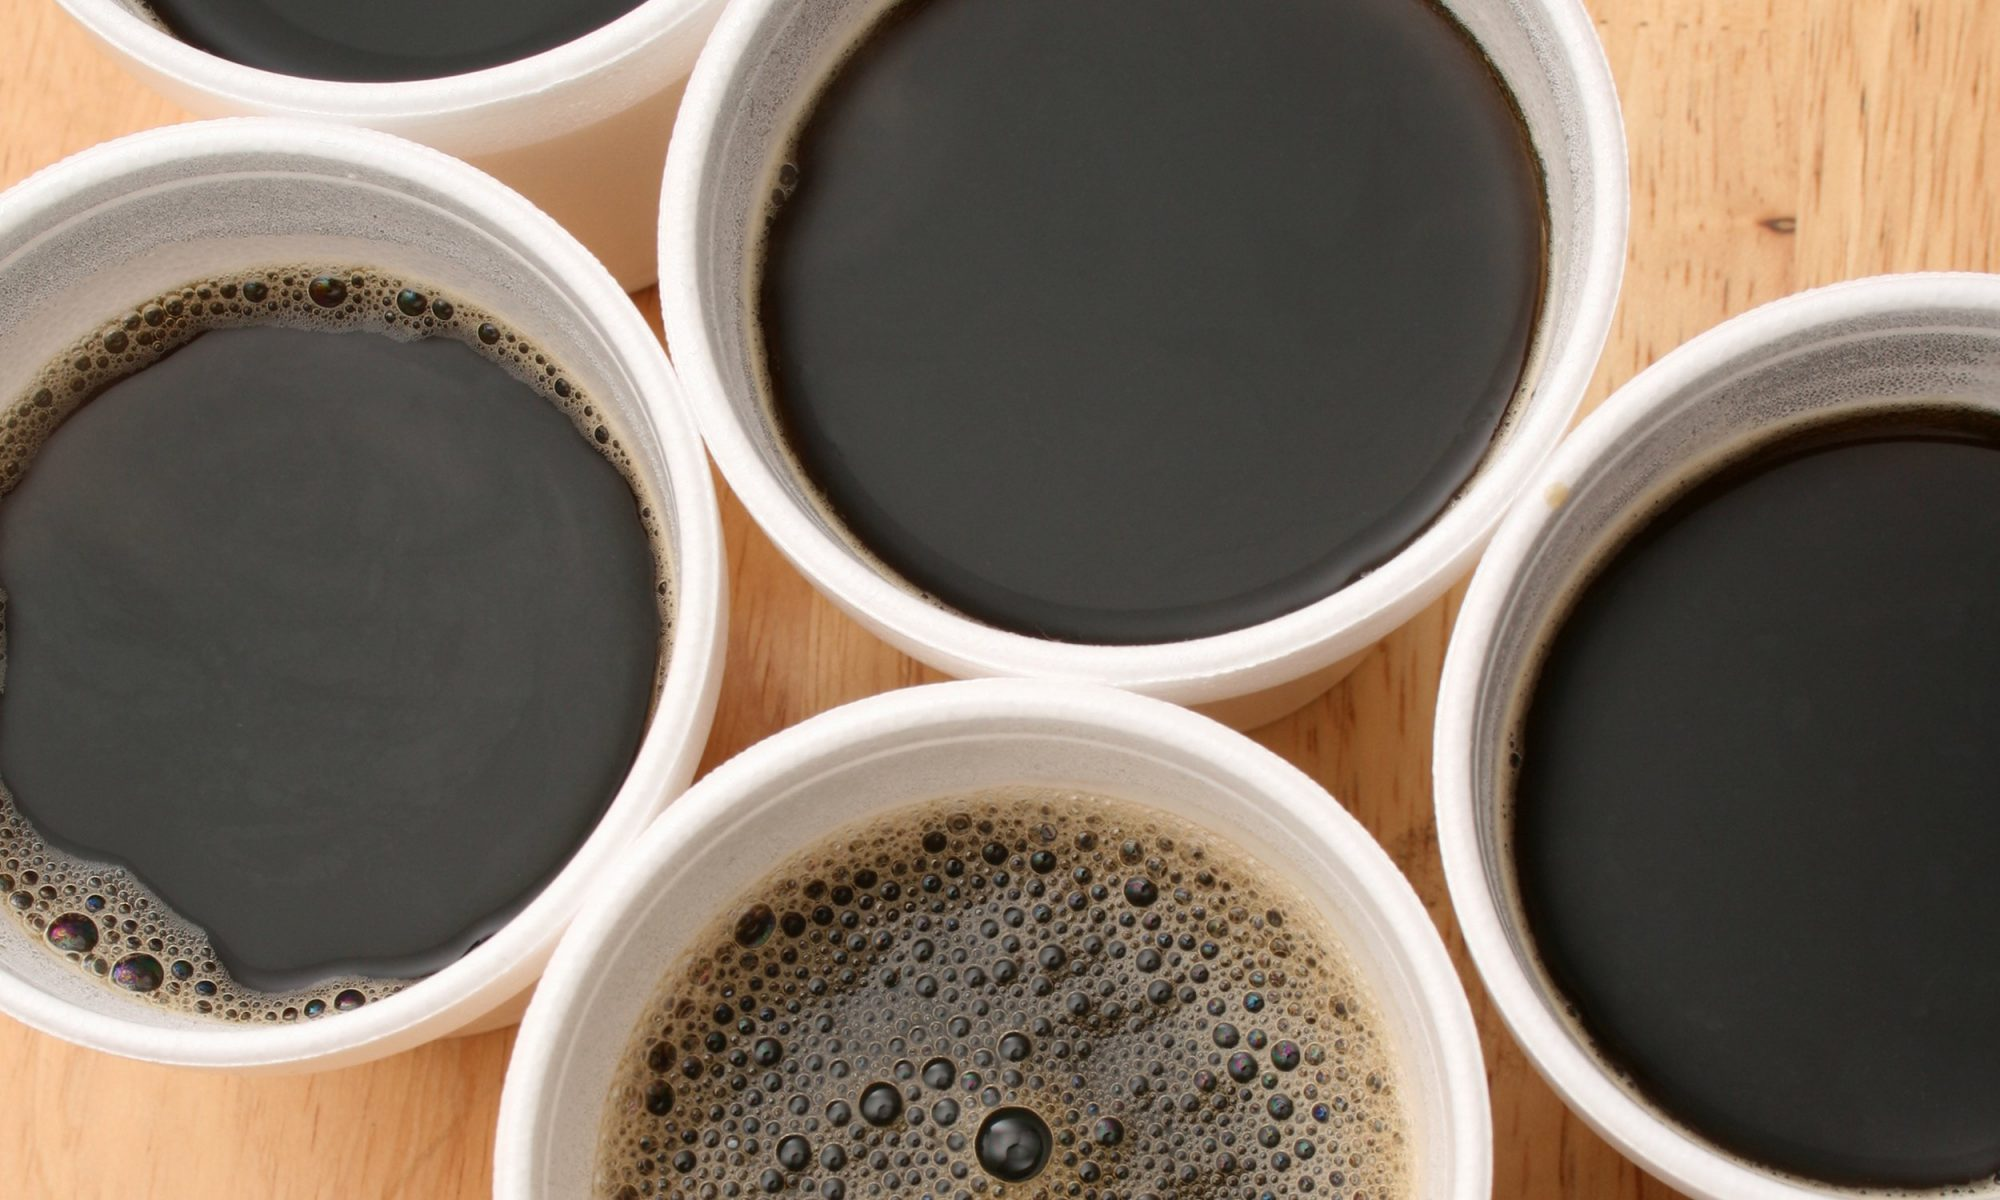 7-Eleven Has the Most Caffeine Per Cup of Coffee